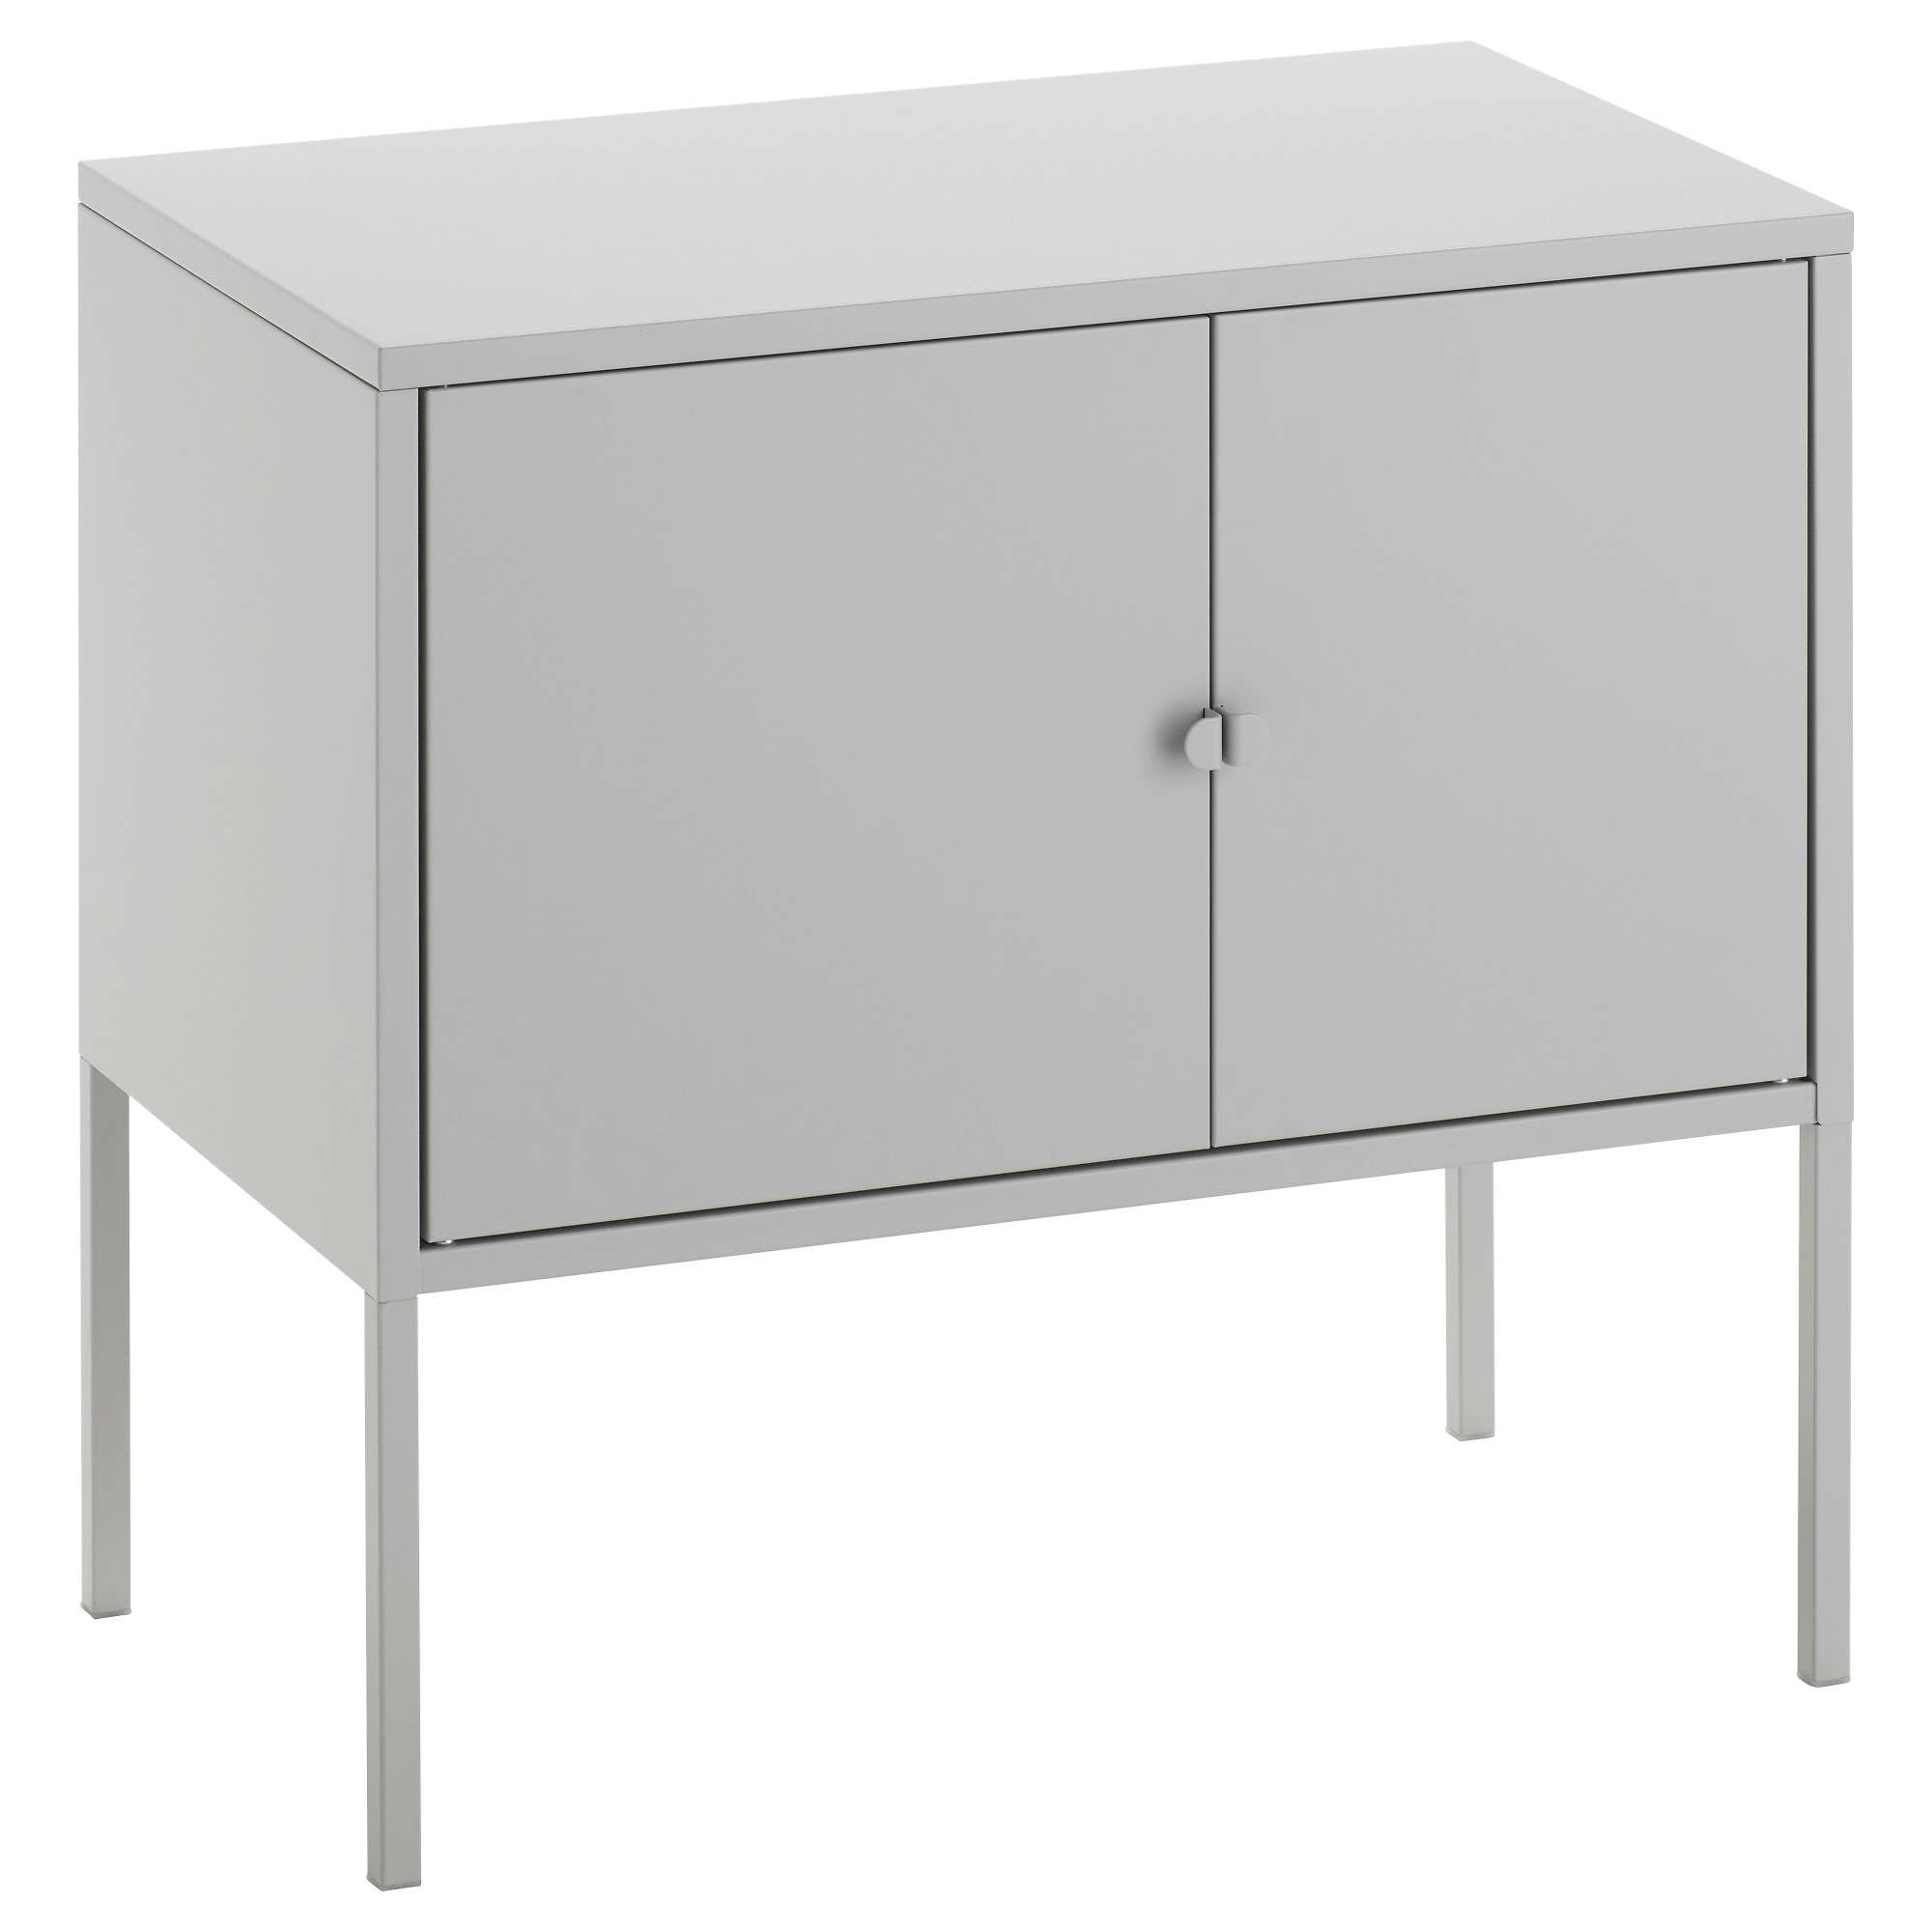 Storage Cabinets & Storage Cupboards | Ikea In White Gloss Ikea Sideboards (View 18 of 20)